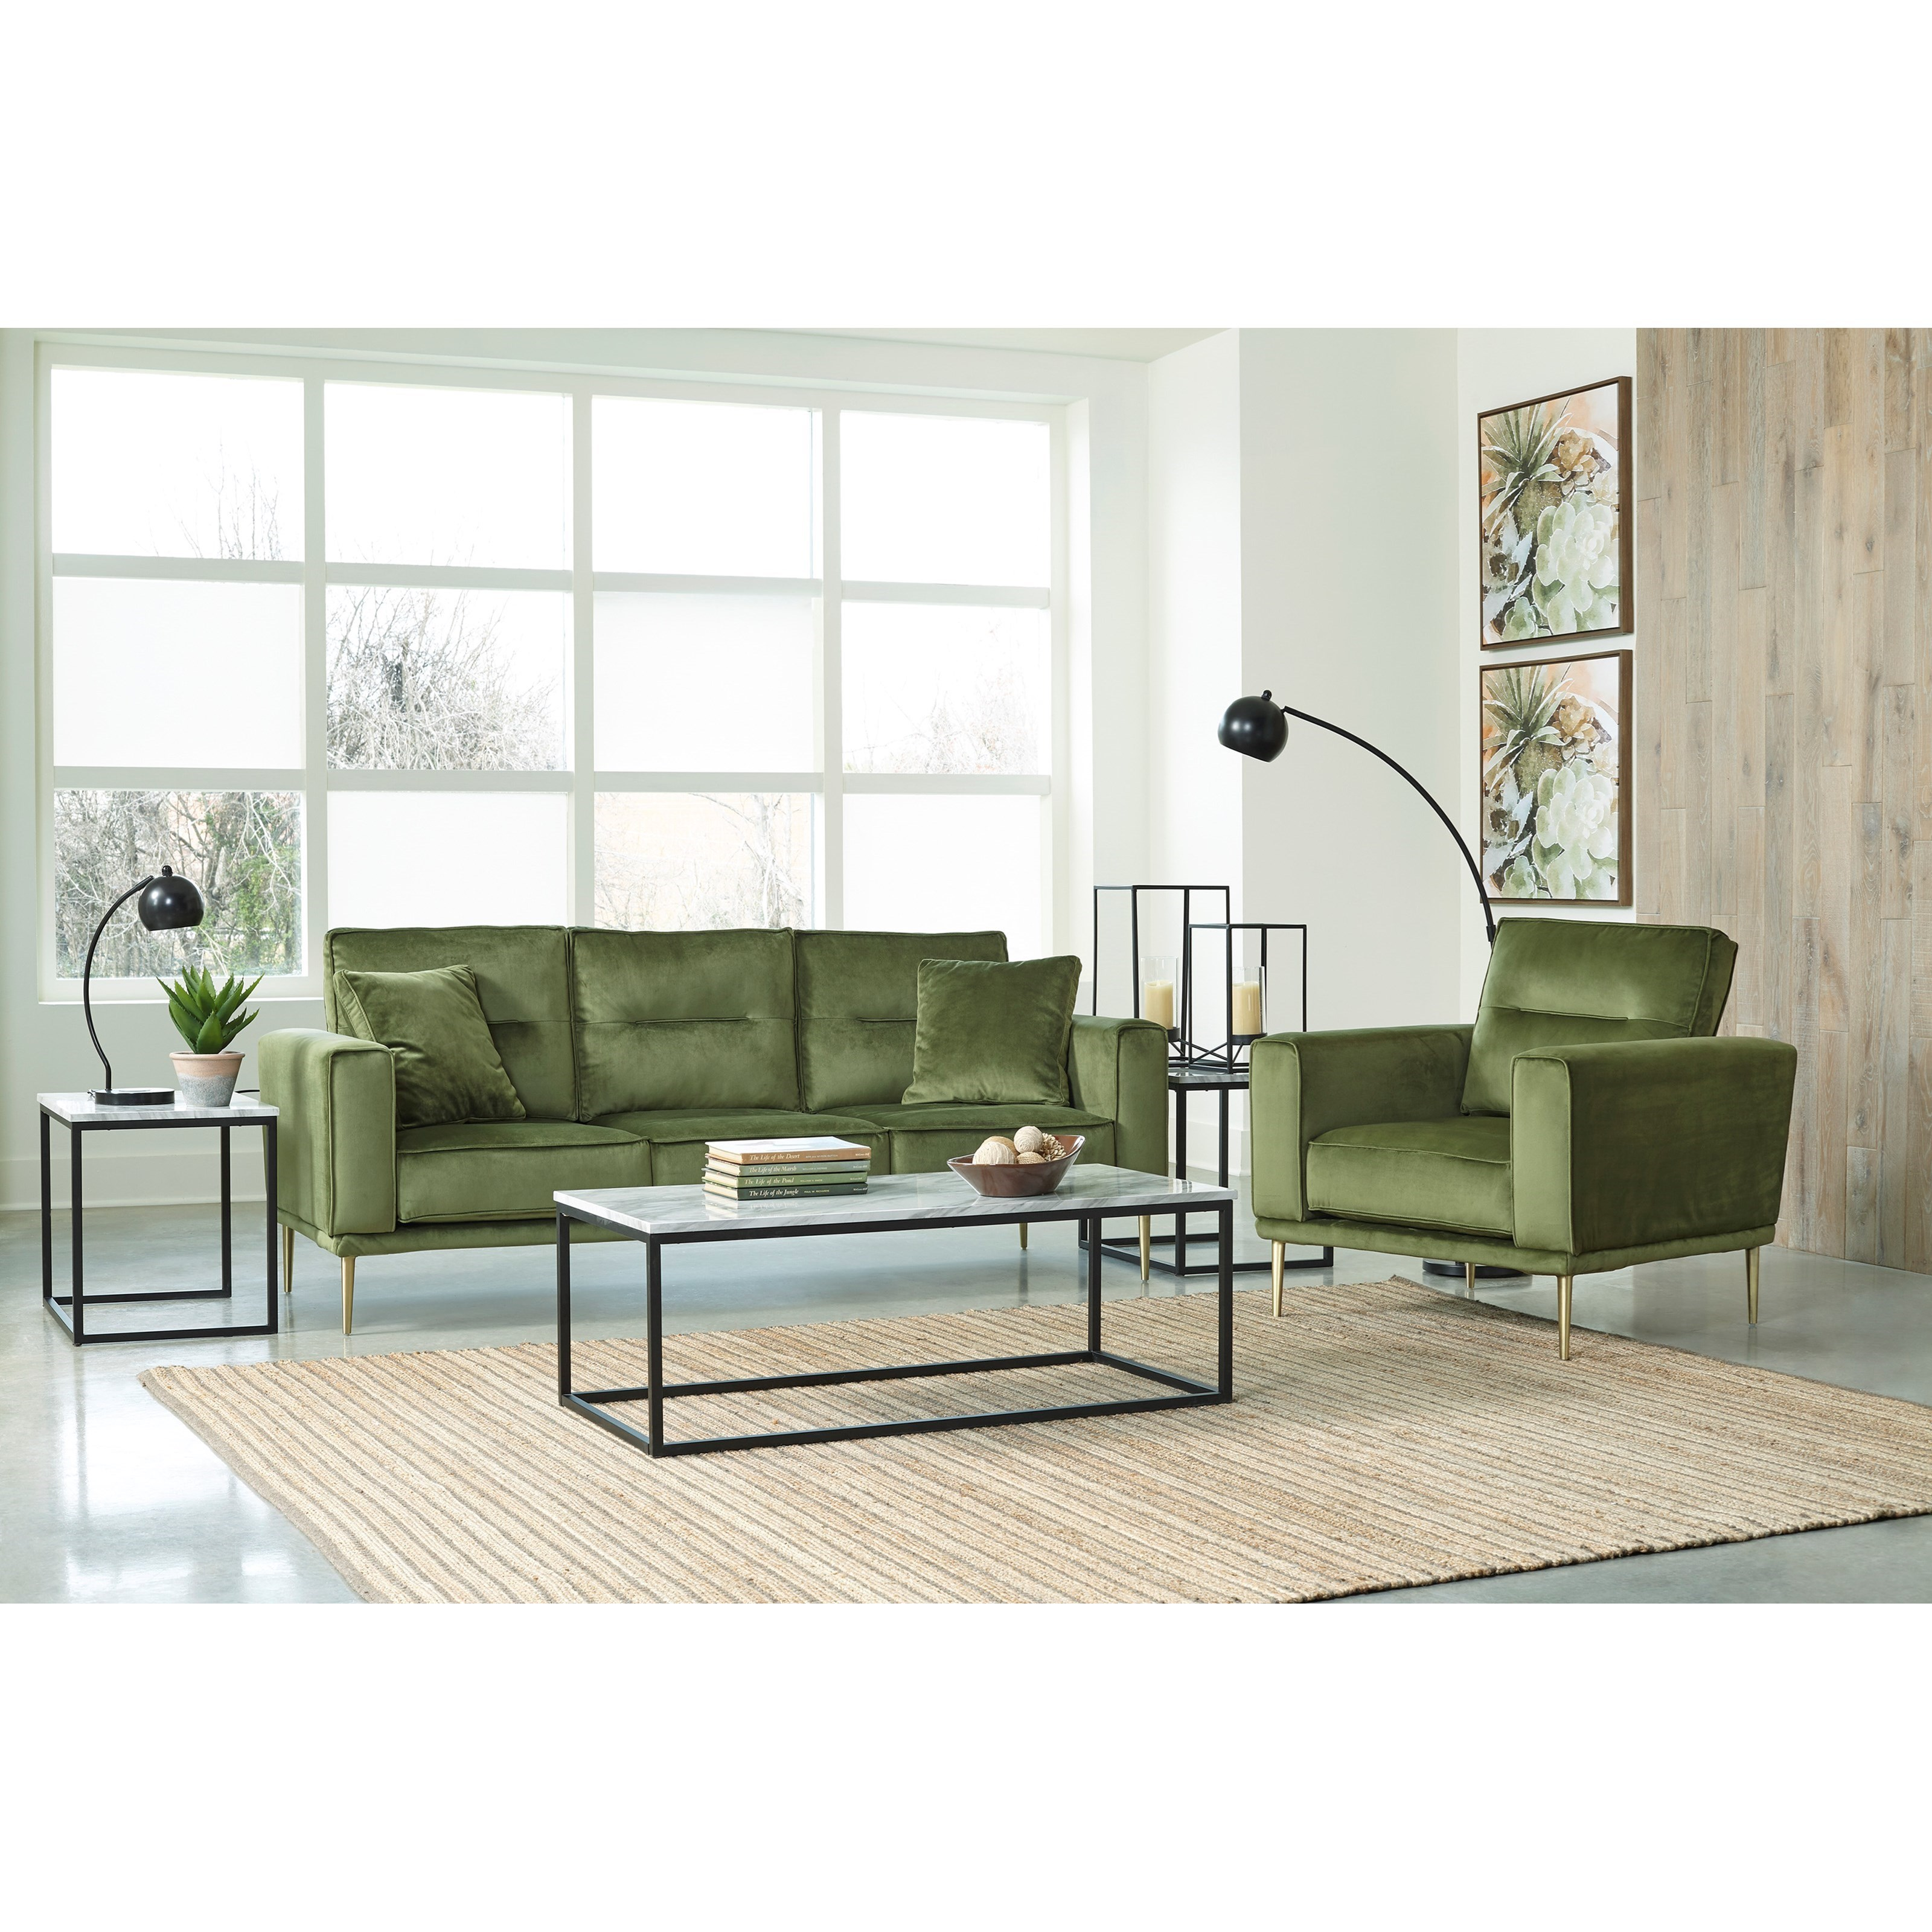 Macleary Living Room Group by Signature Design by Ashley at Household Furniture